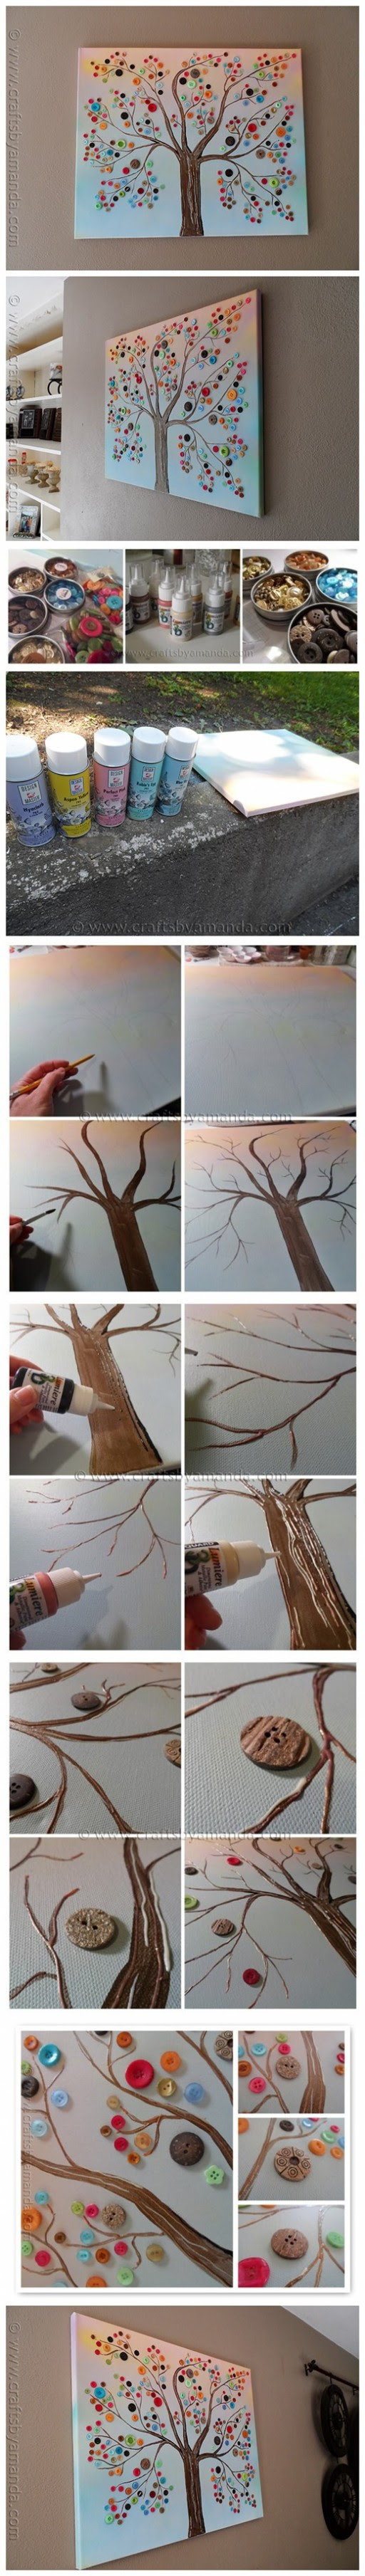 How to make vibrant DIY button tree canvas wall art step by step tutorial instructions